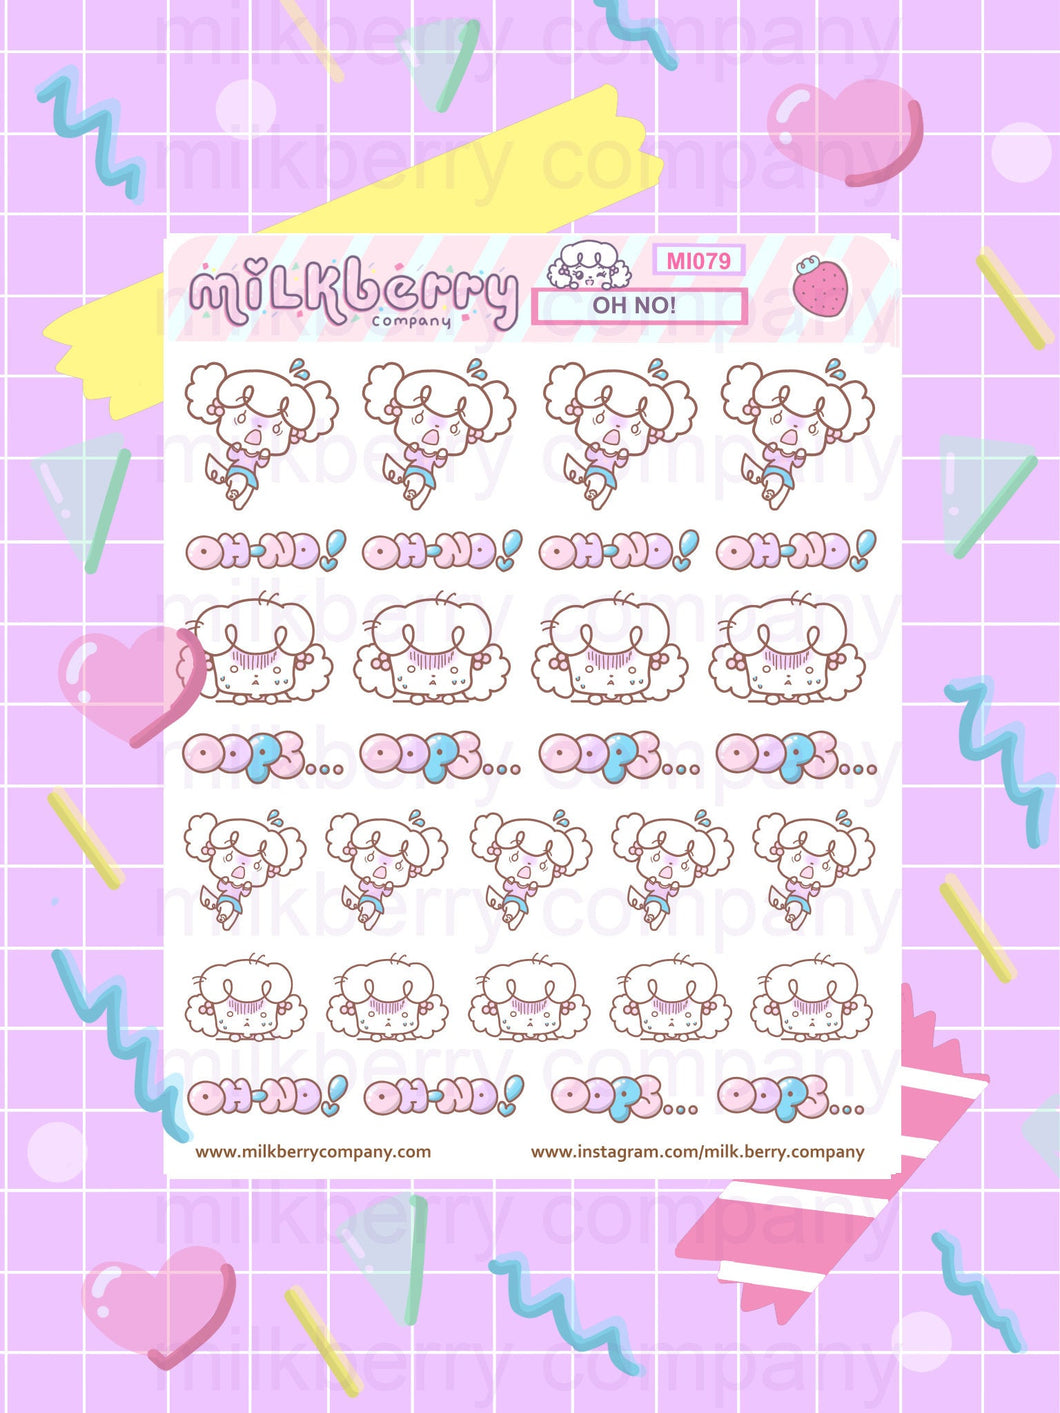 OH-NO! Mistake Oops Shocked Kawaii Planner Stickers